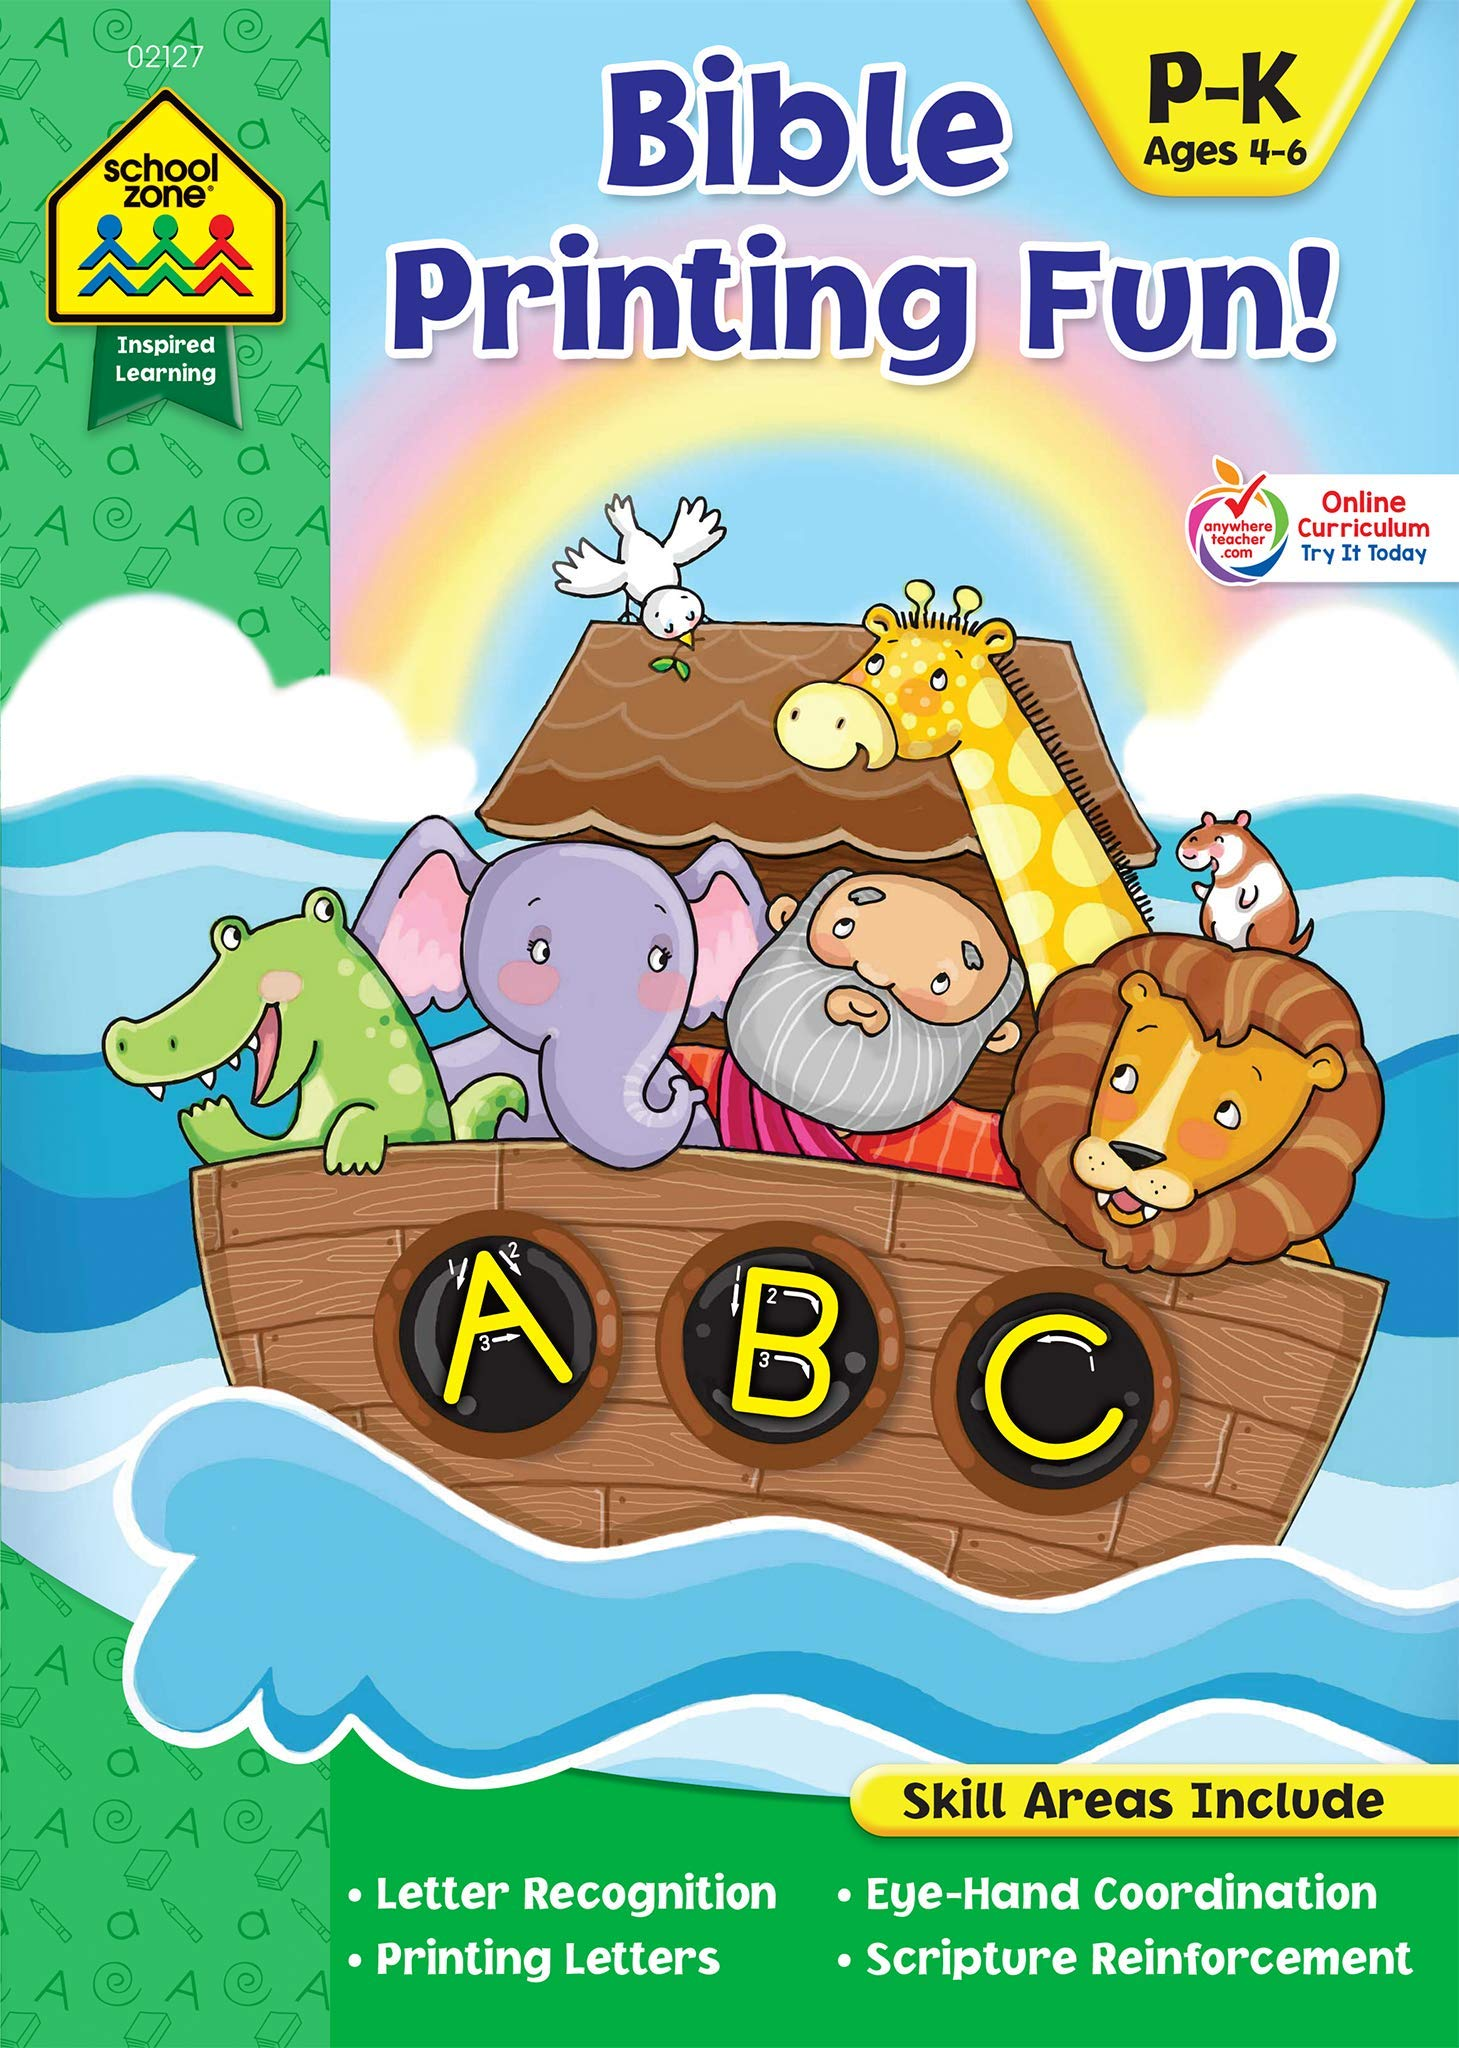 School Zone – Bible Printing Fun! Workbook – Ages, 4 to 6, Preschool to Kindergarten, Christian Scripture, Old & New Testament, Letter Recognition, and More (Inspired Learning Workbook)